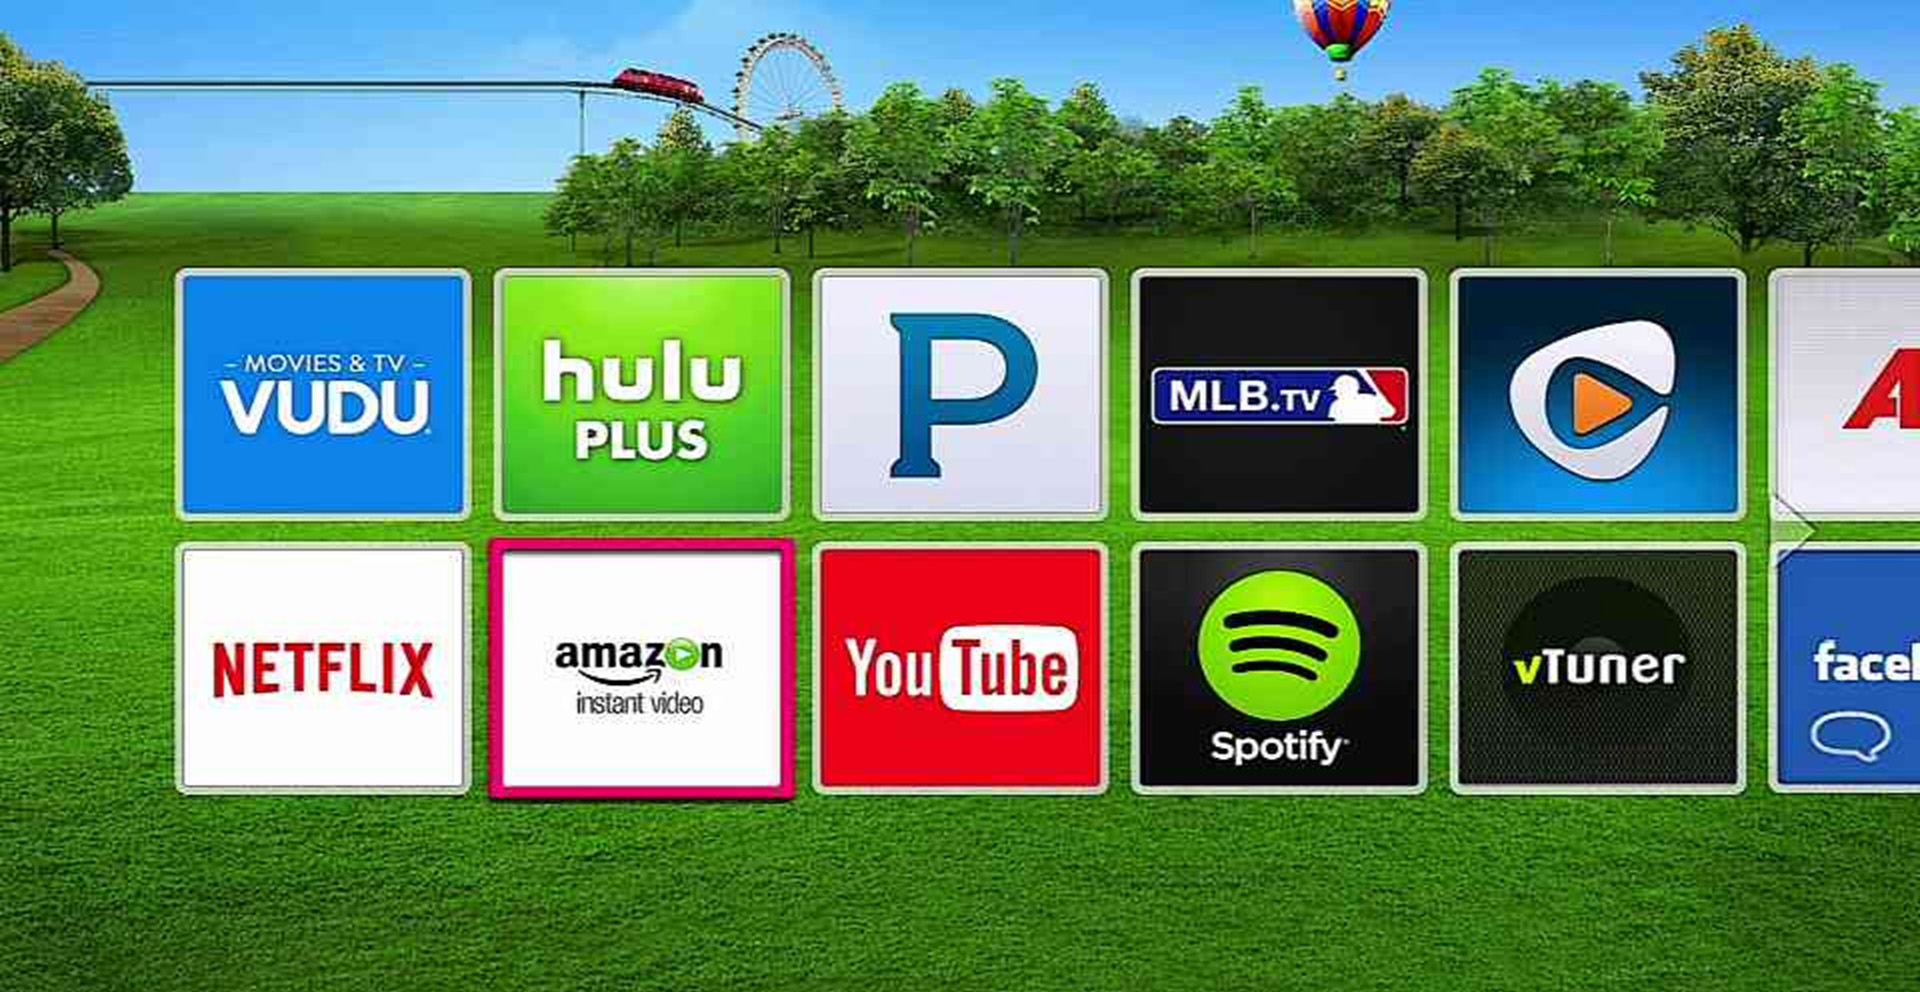 Amazon® instant video Troubleshooting - Blu-ray | LG USA Support